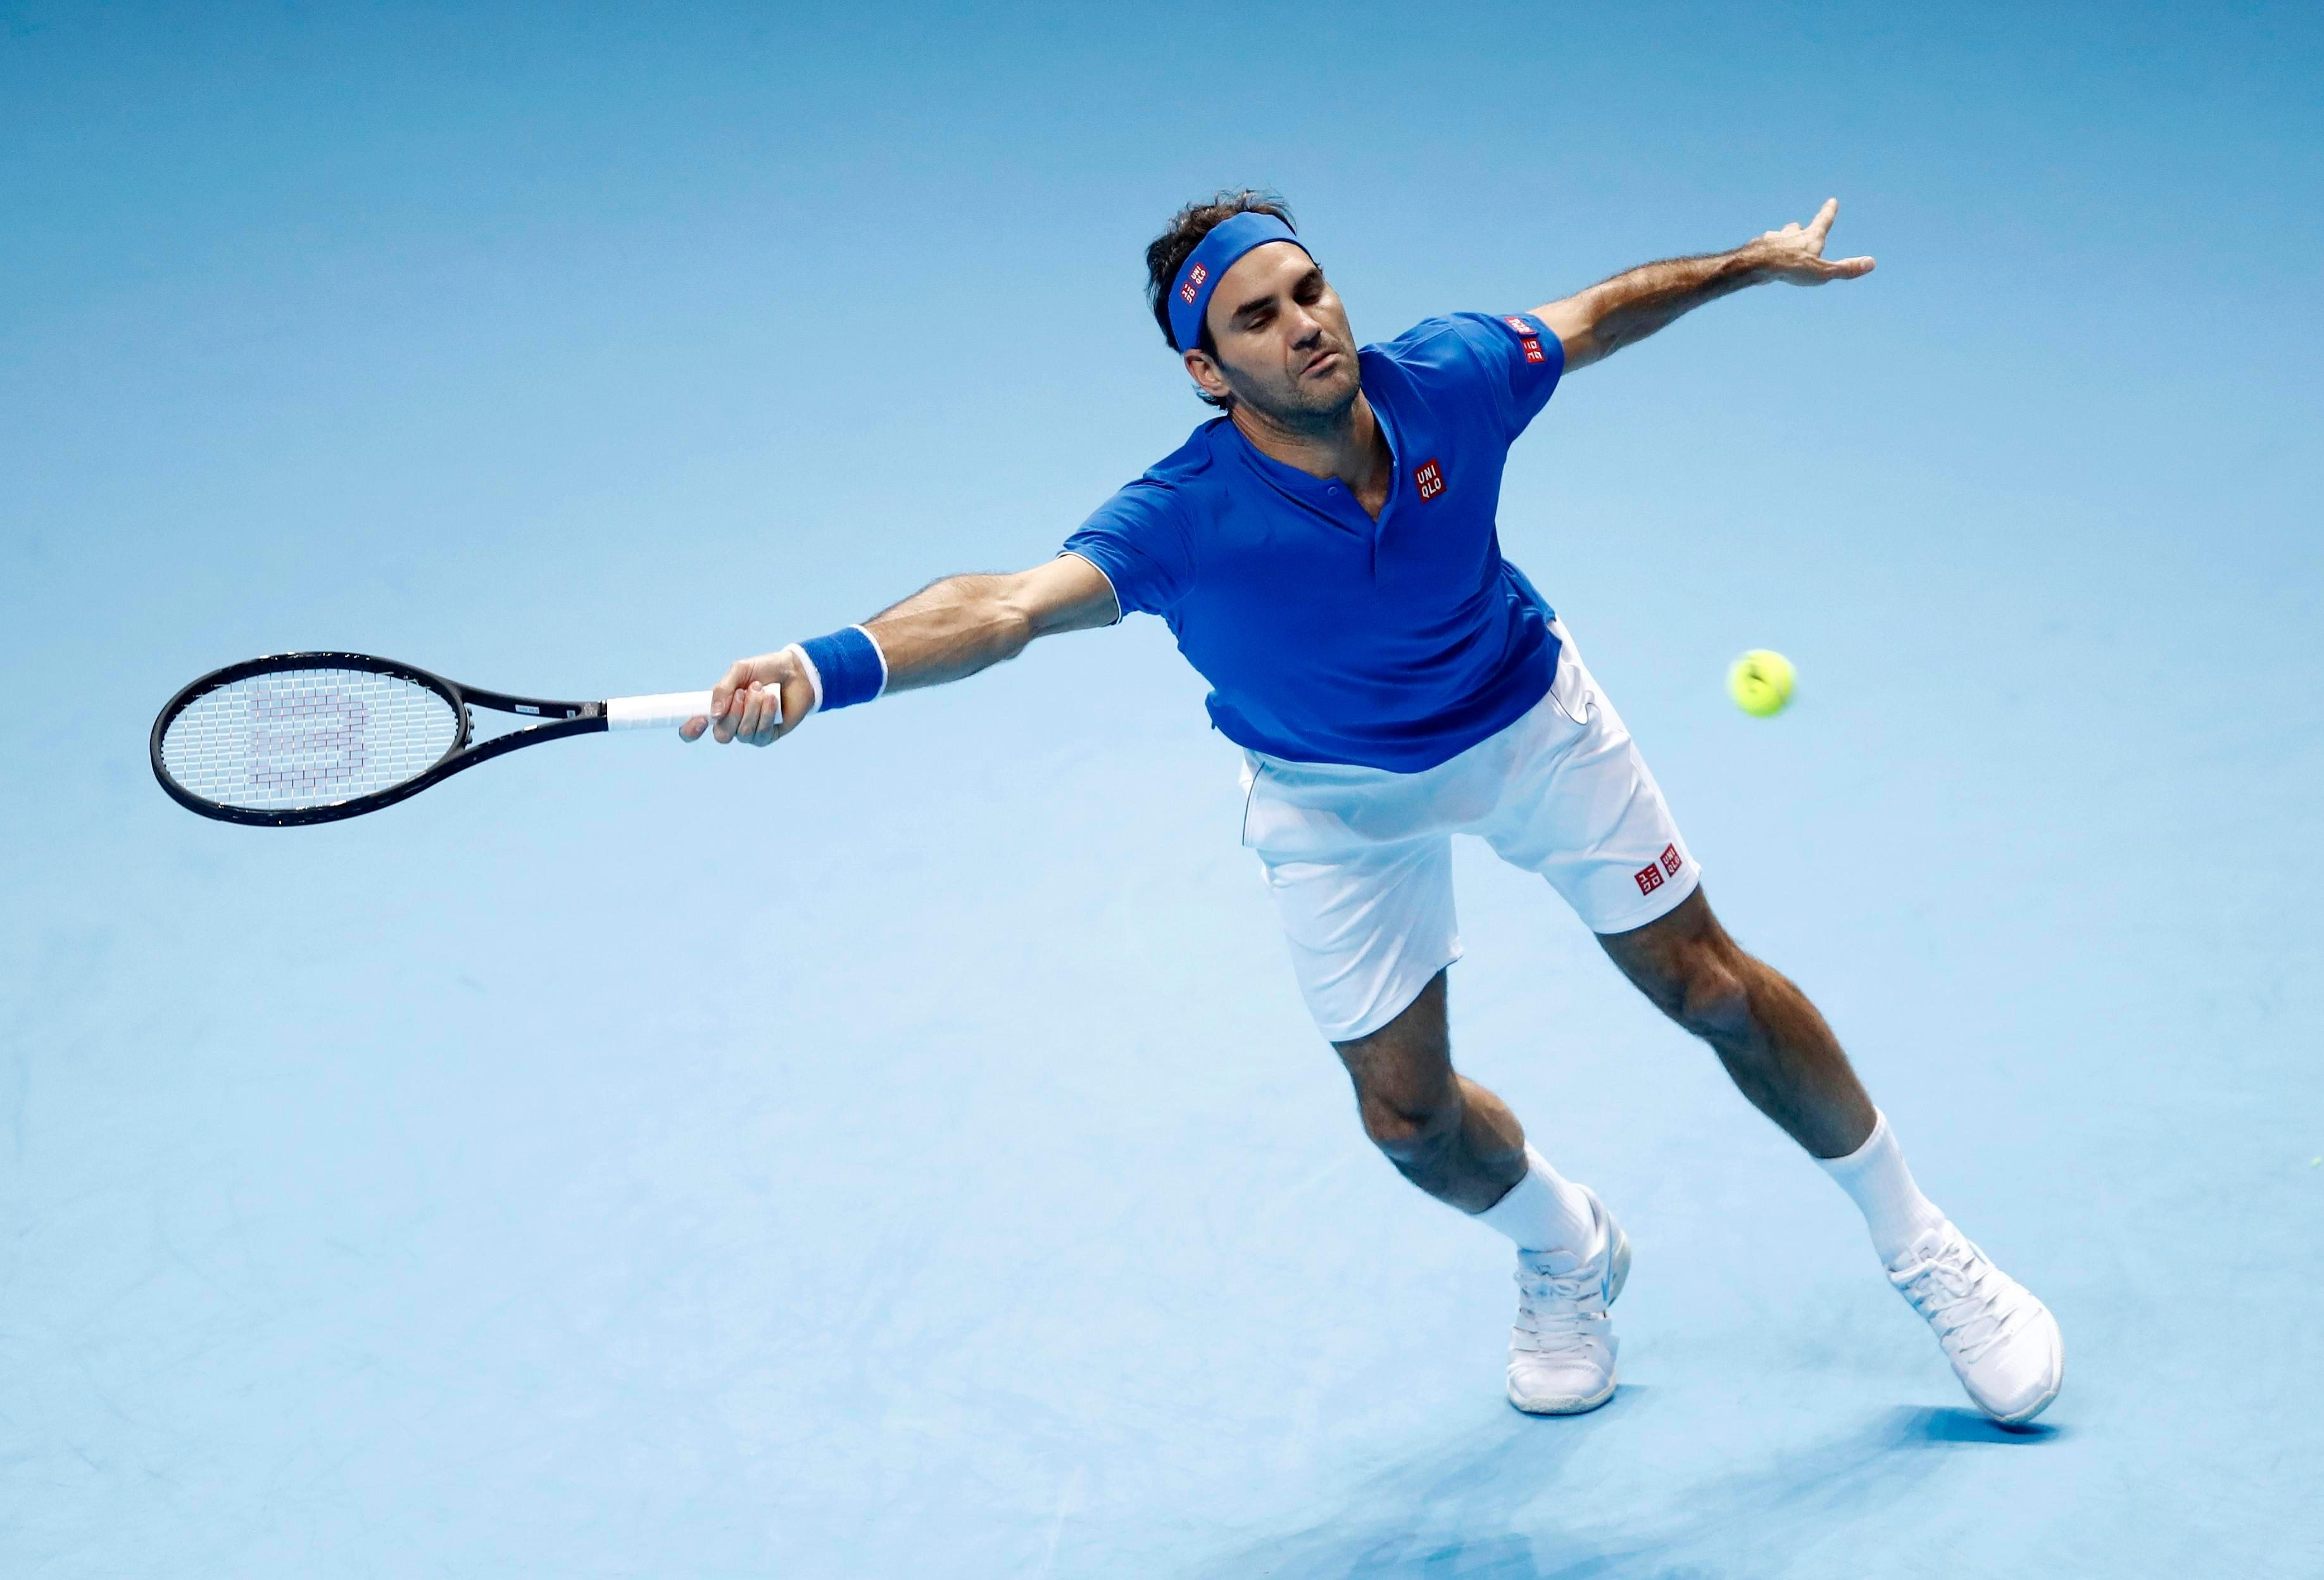 Federer finished the match with a positive 18-14 ratio, forcing Anderson to 24 unforced errors